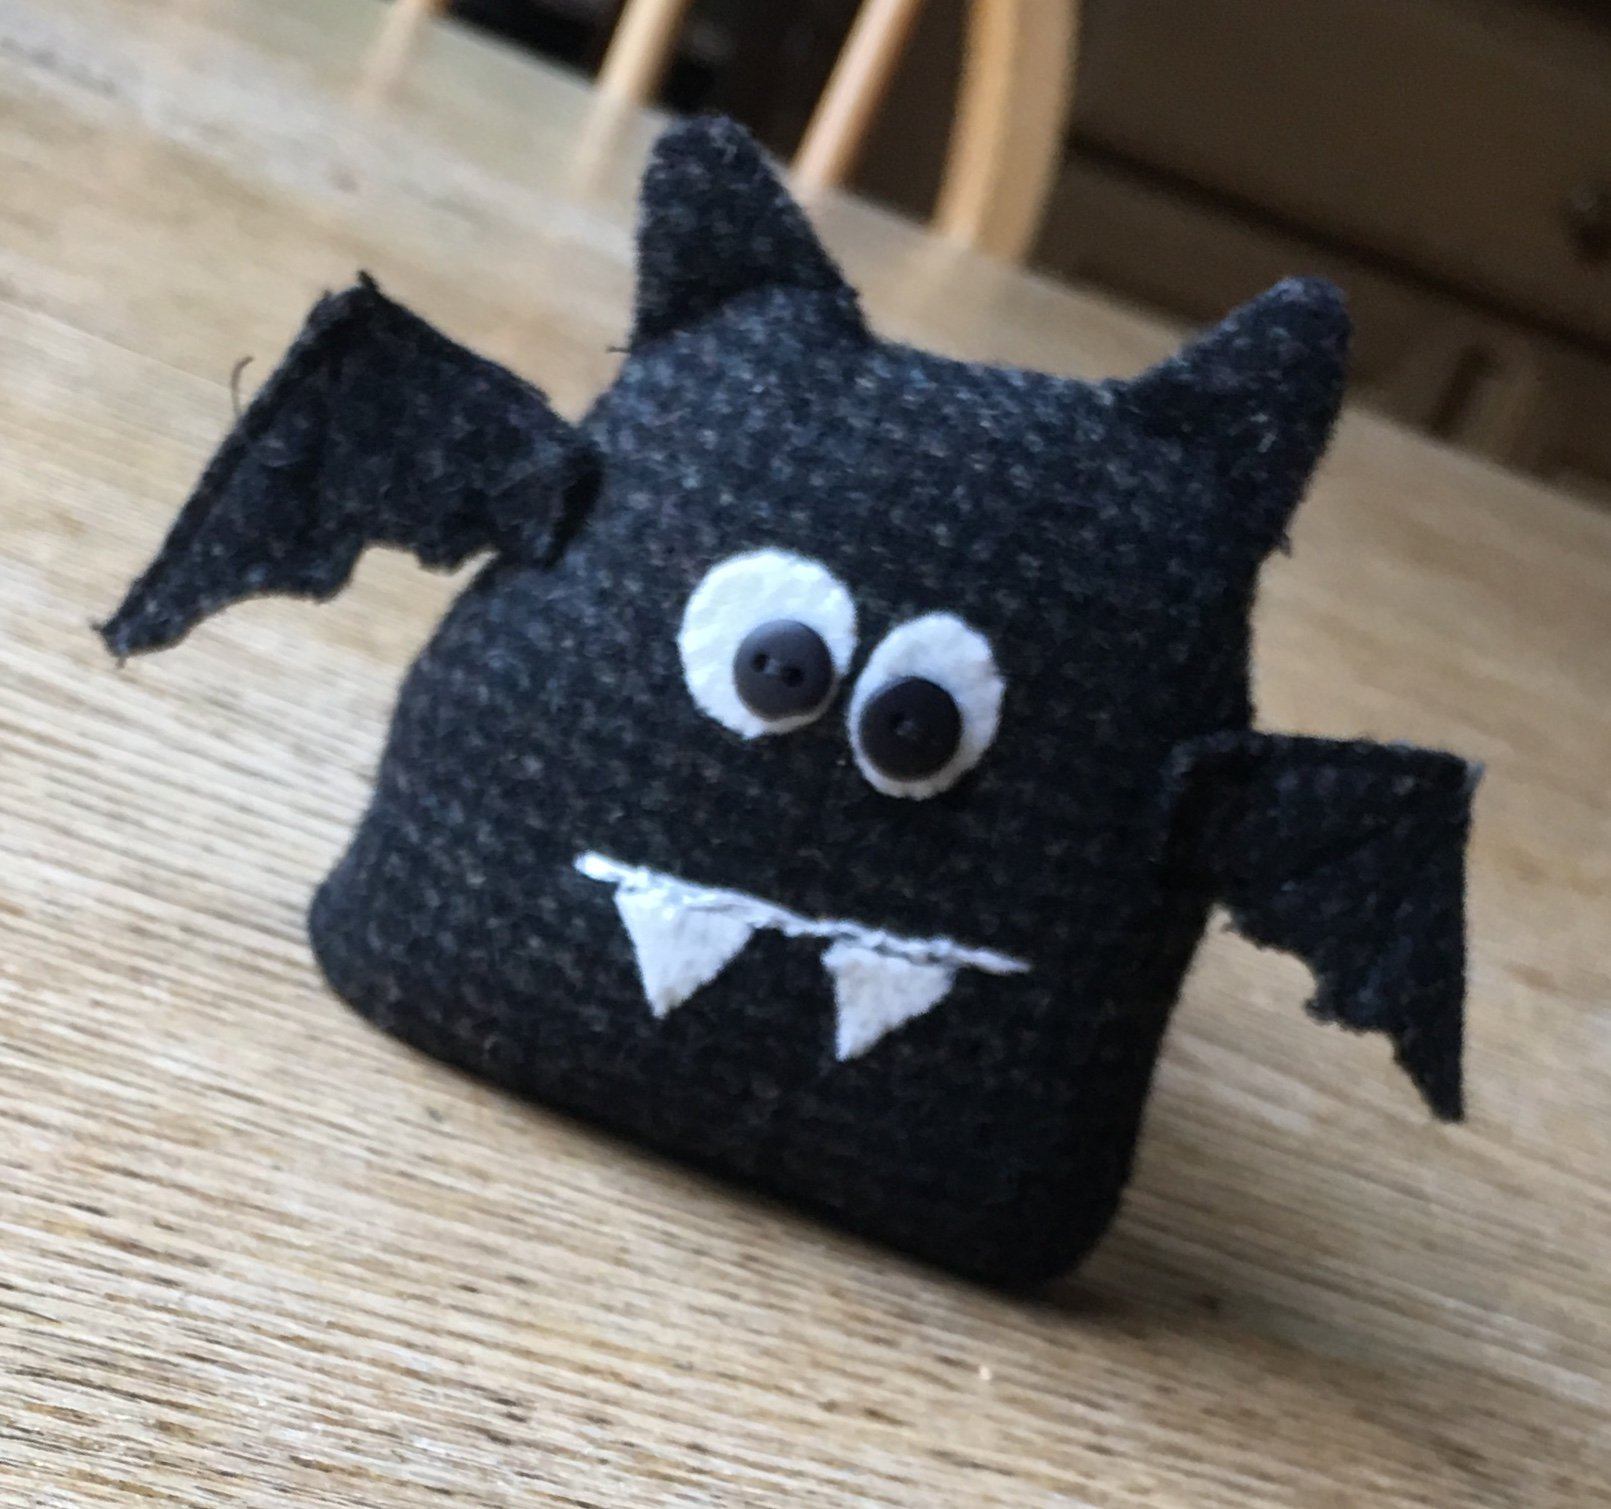 Batty Make-Do kit with pattern